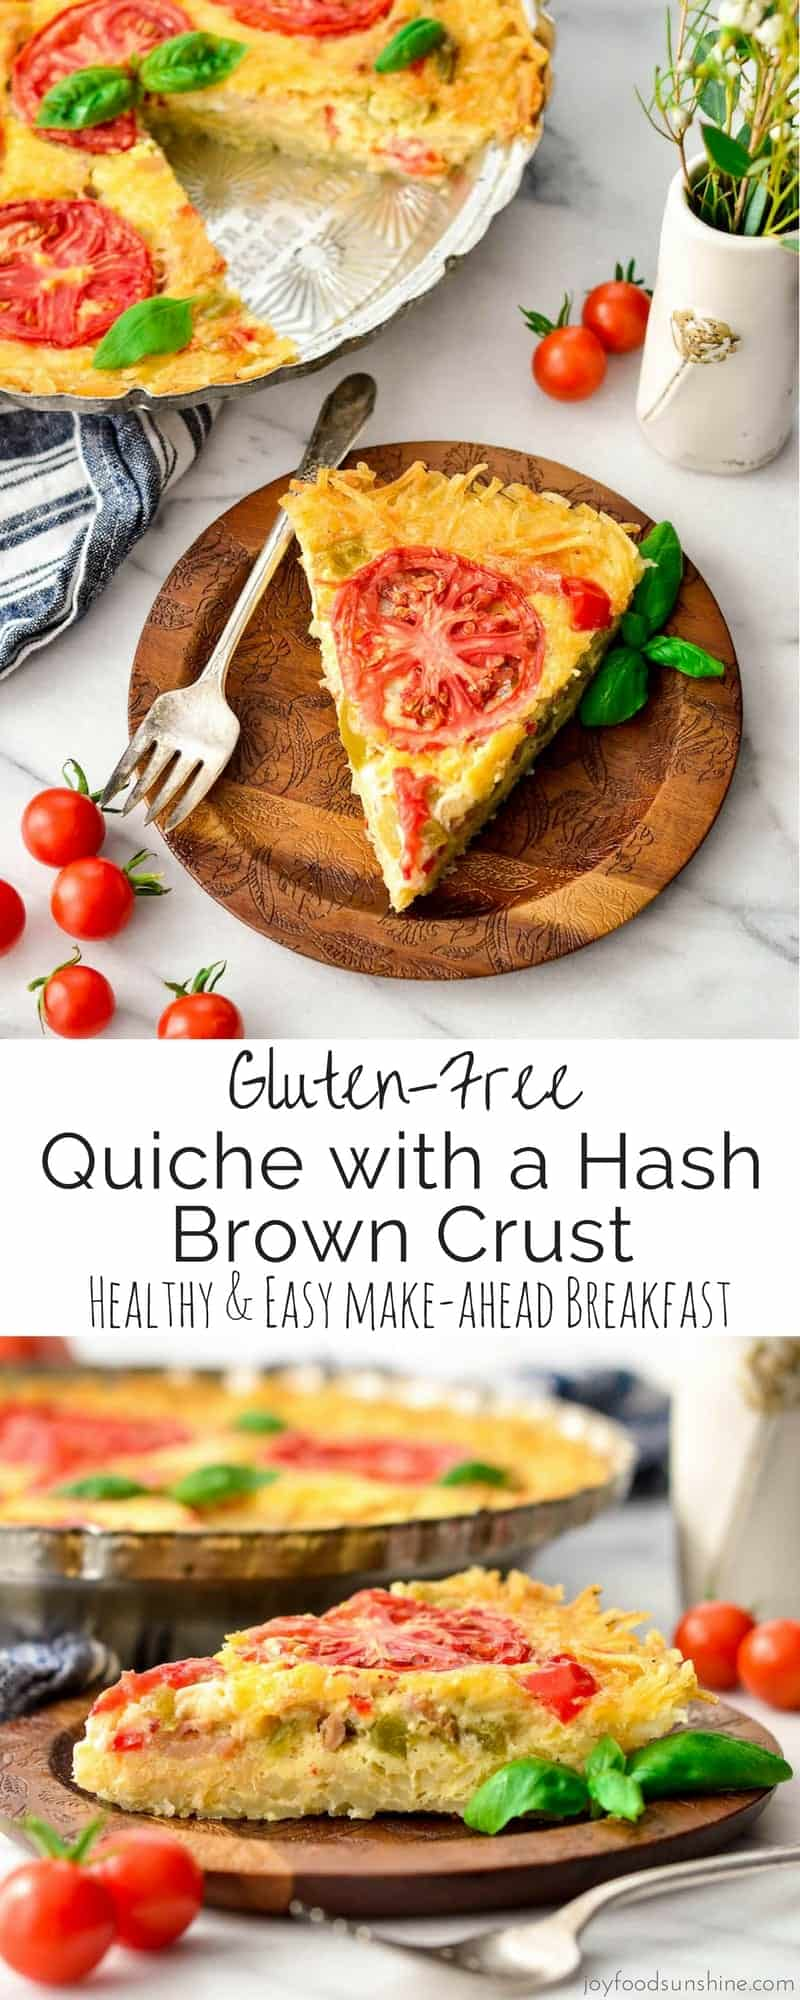 This Gluten-Free Quiche with a Hash Brown Crust is an easy, healthy & filling recipe! Eat it as a protein-packed breakfast or quick dinner! It's make-ahead, gluten-free and vegetarian friendly!